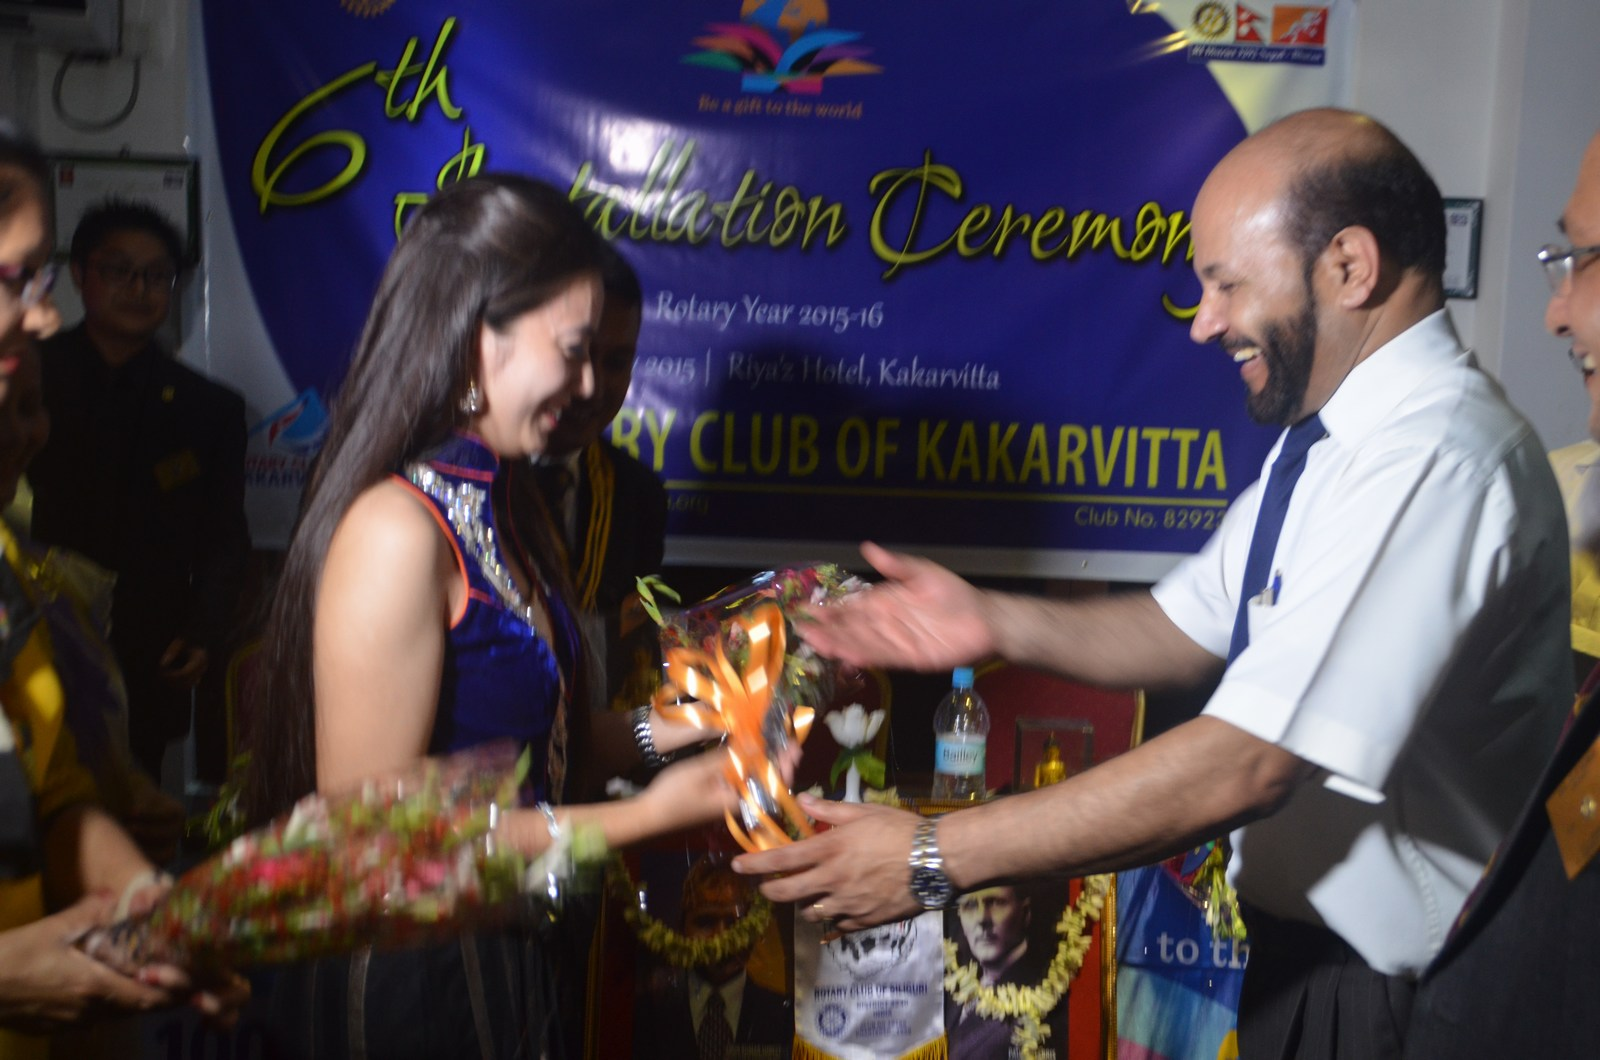 6th Installation Ceremony 2015 16 Rotary Club Of Kakarvitta 60